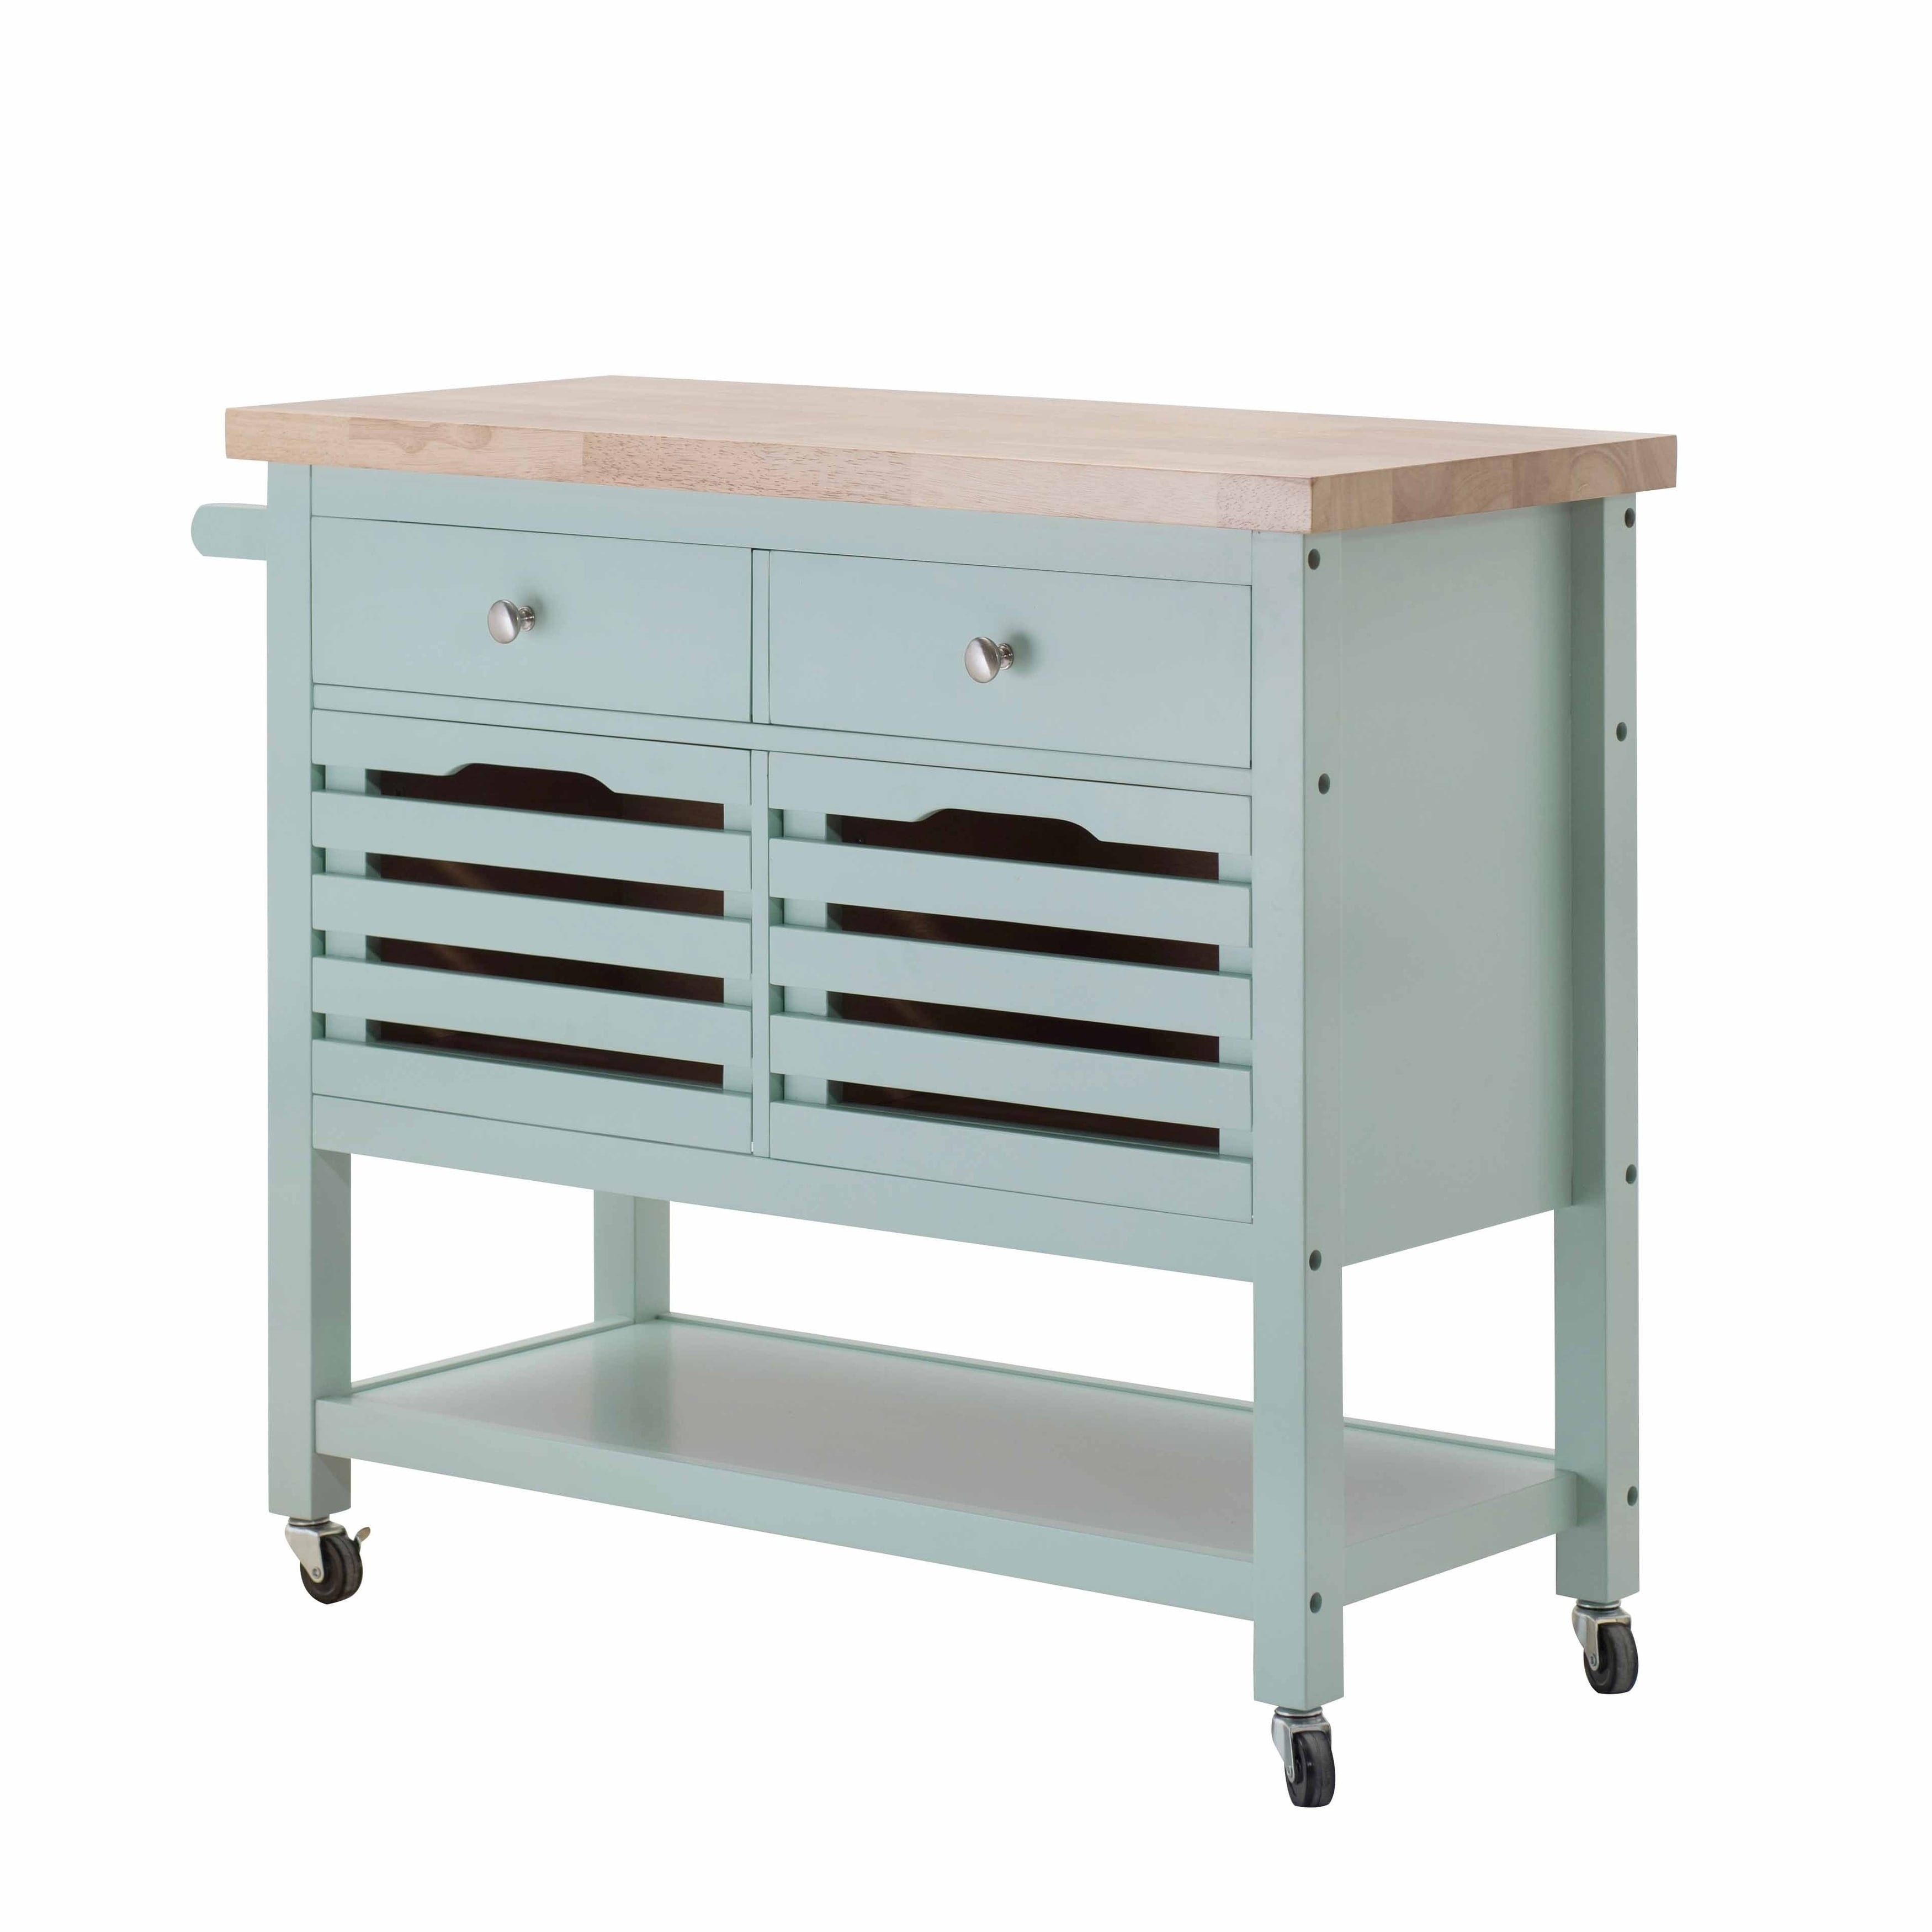 Shop SJ Collection New Jaden Blue Wood Kitchen Cart - Free Shipping ...